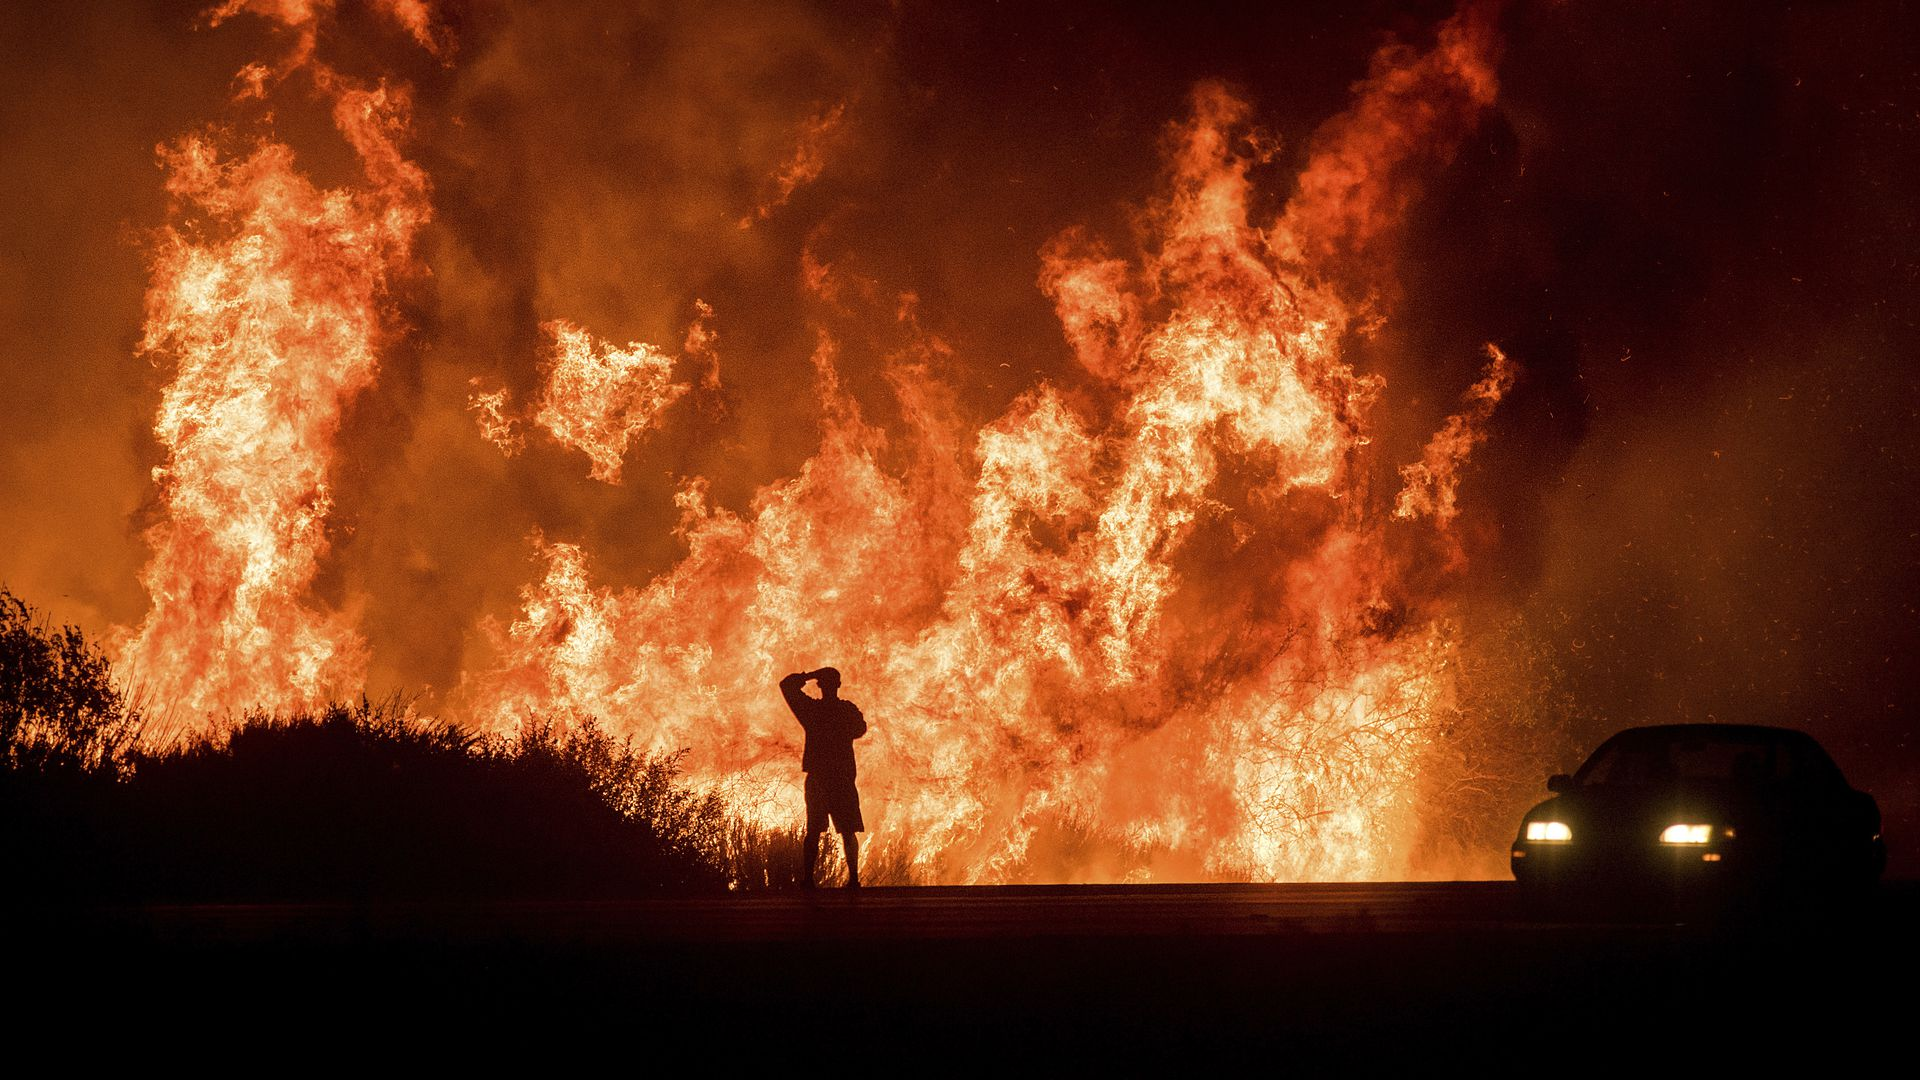 The Thomas Fire in Ventura County